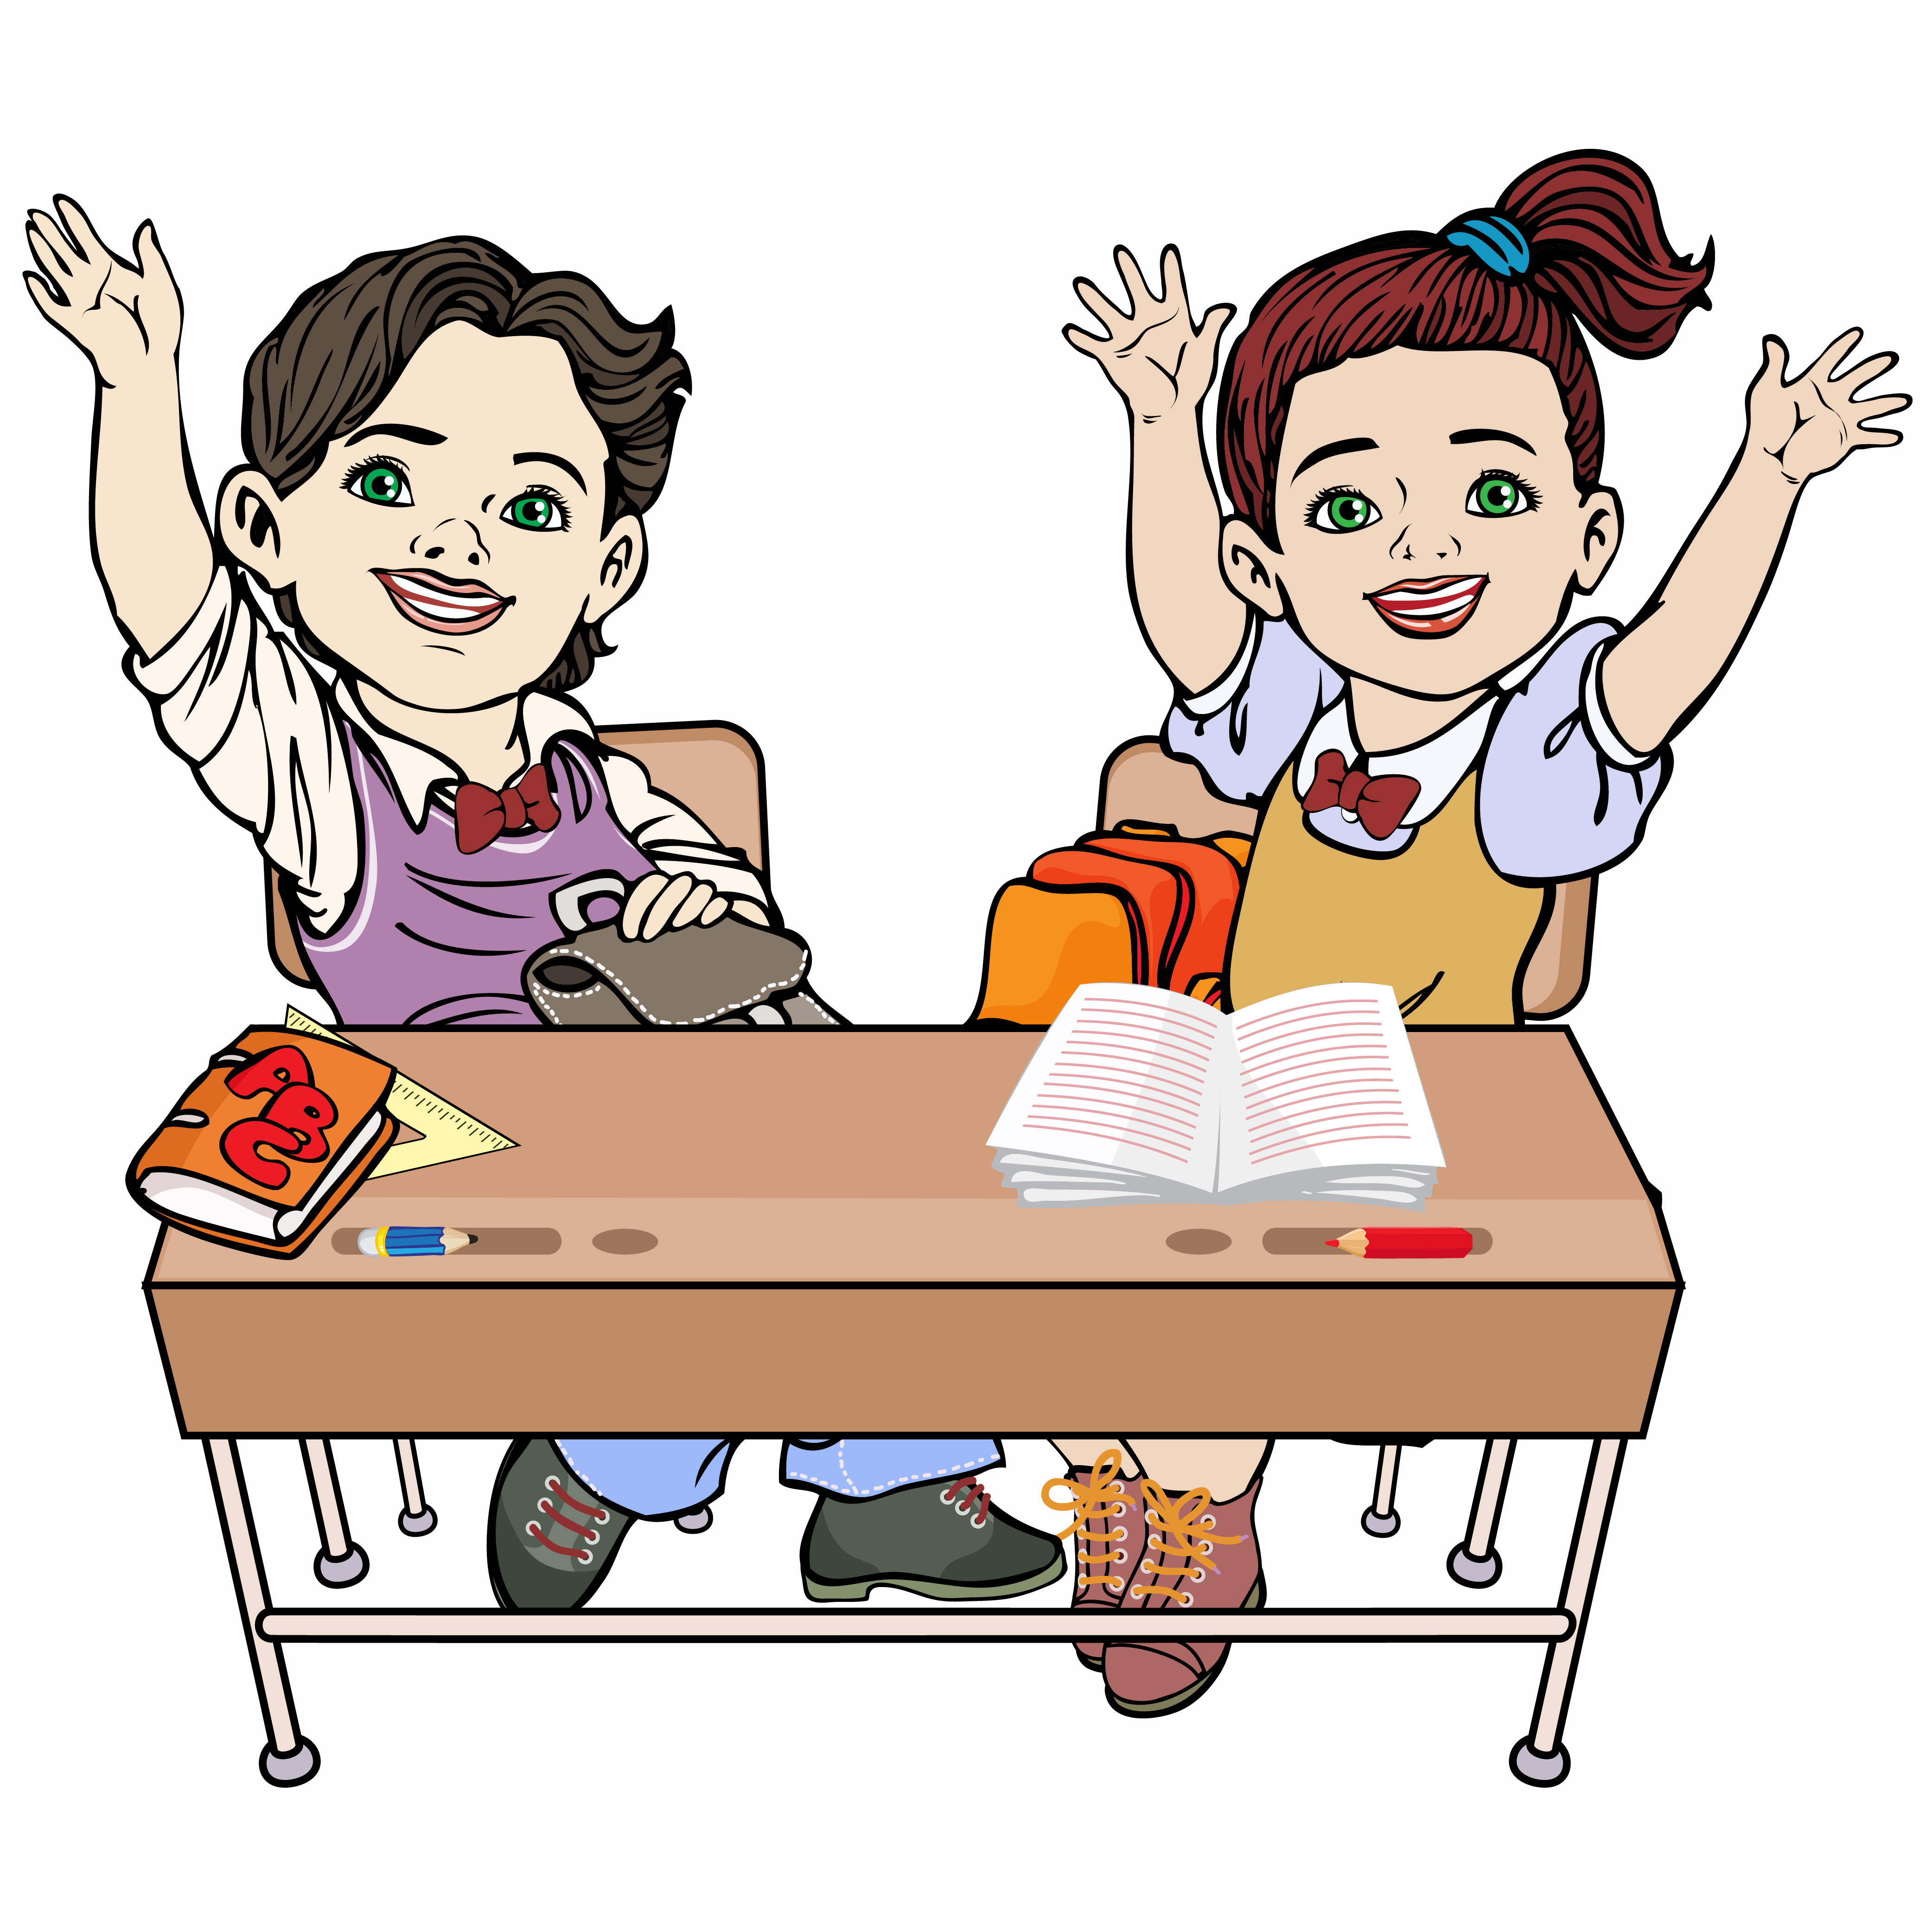 Torah clipart open siddur. Educational resources for jewish